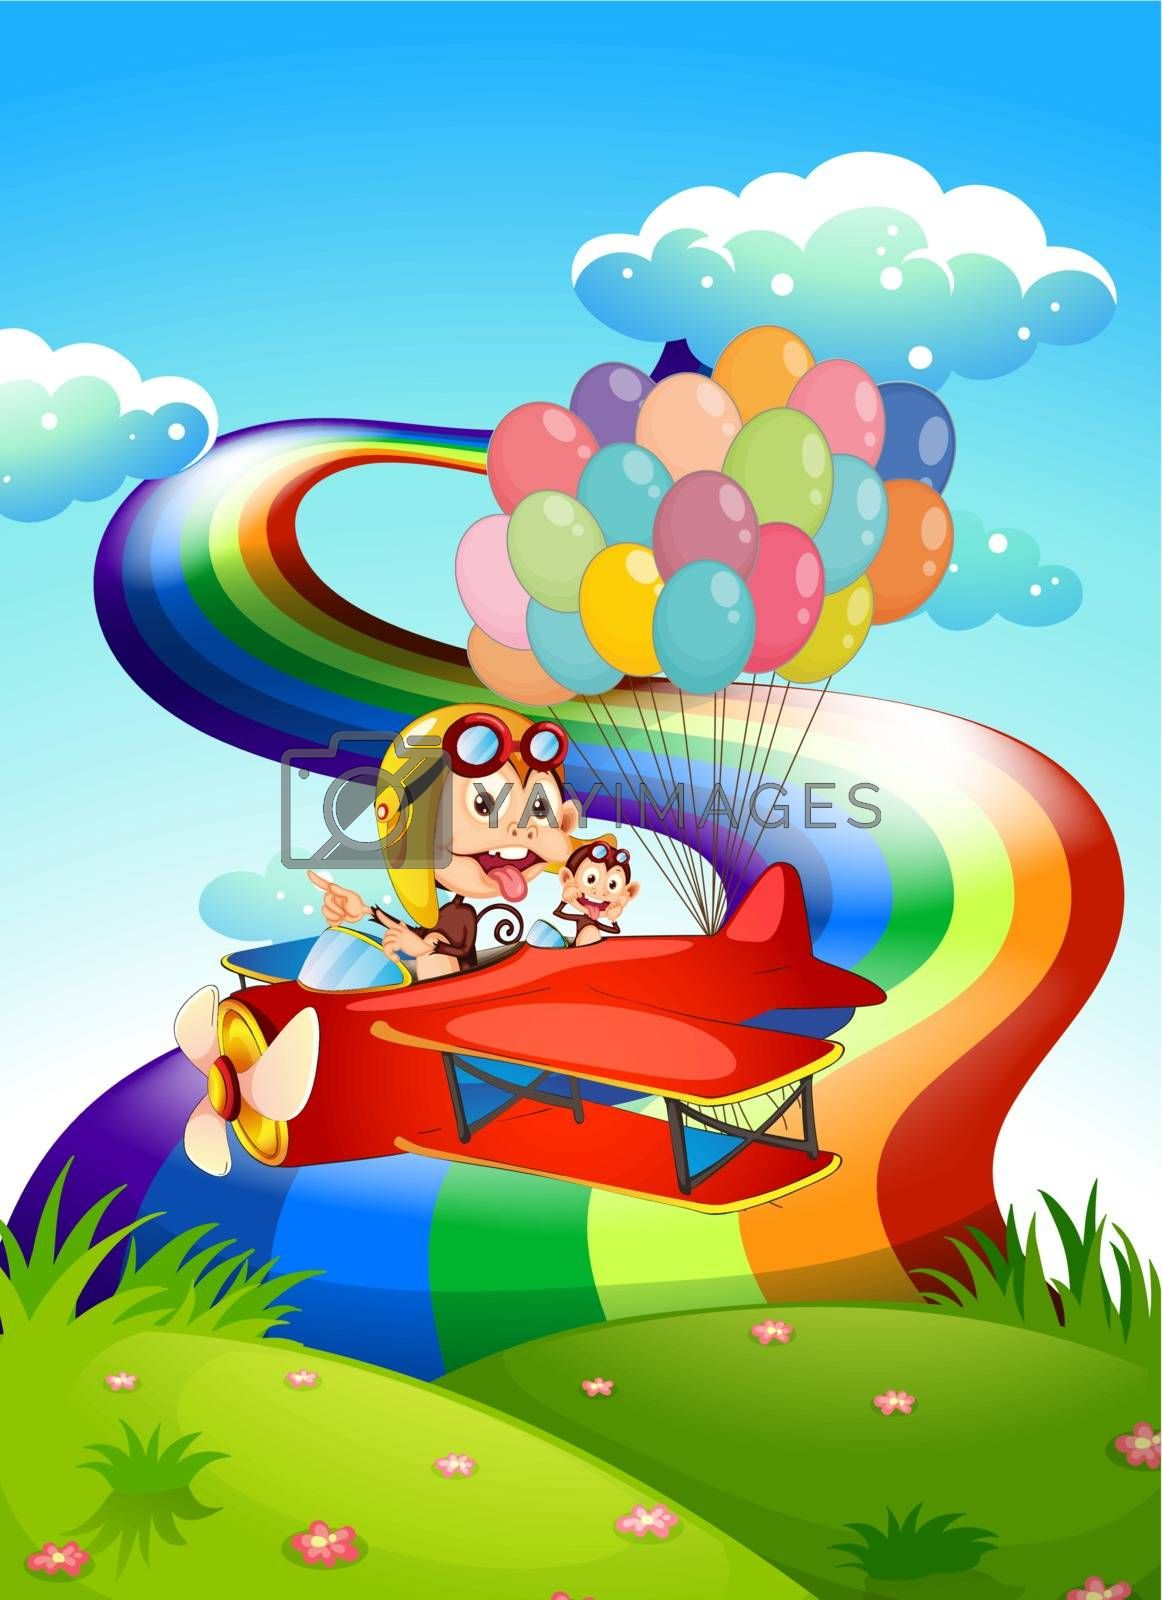 Illustration of the playful monkeys on a plane with balloons